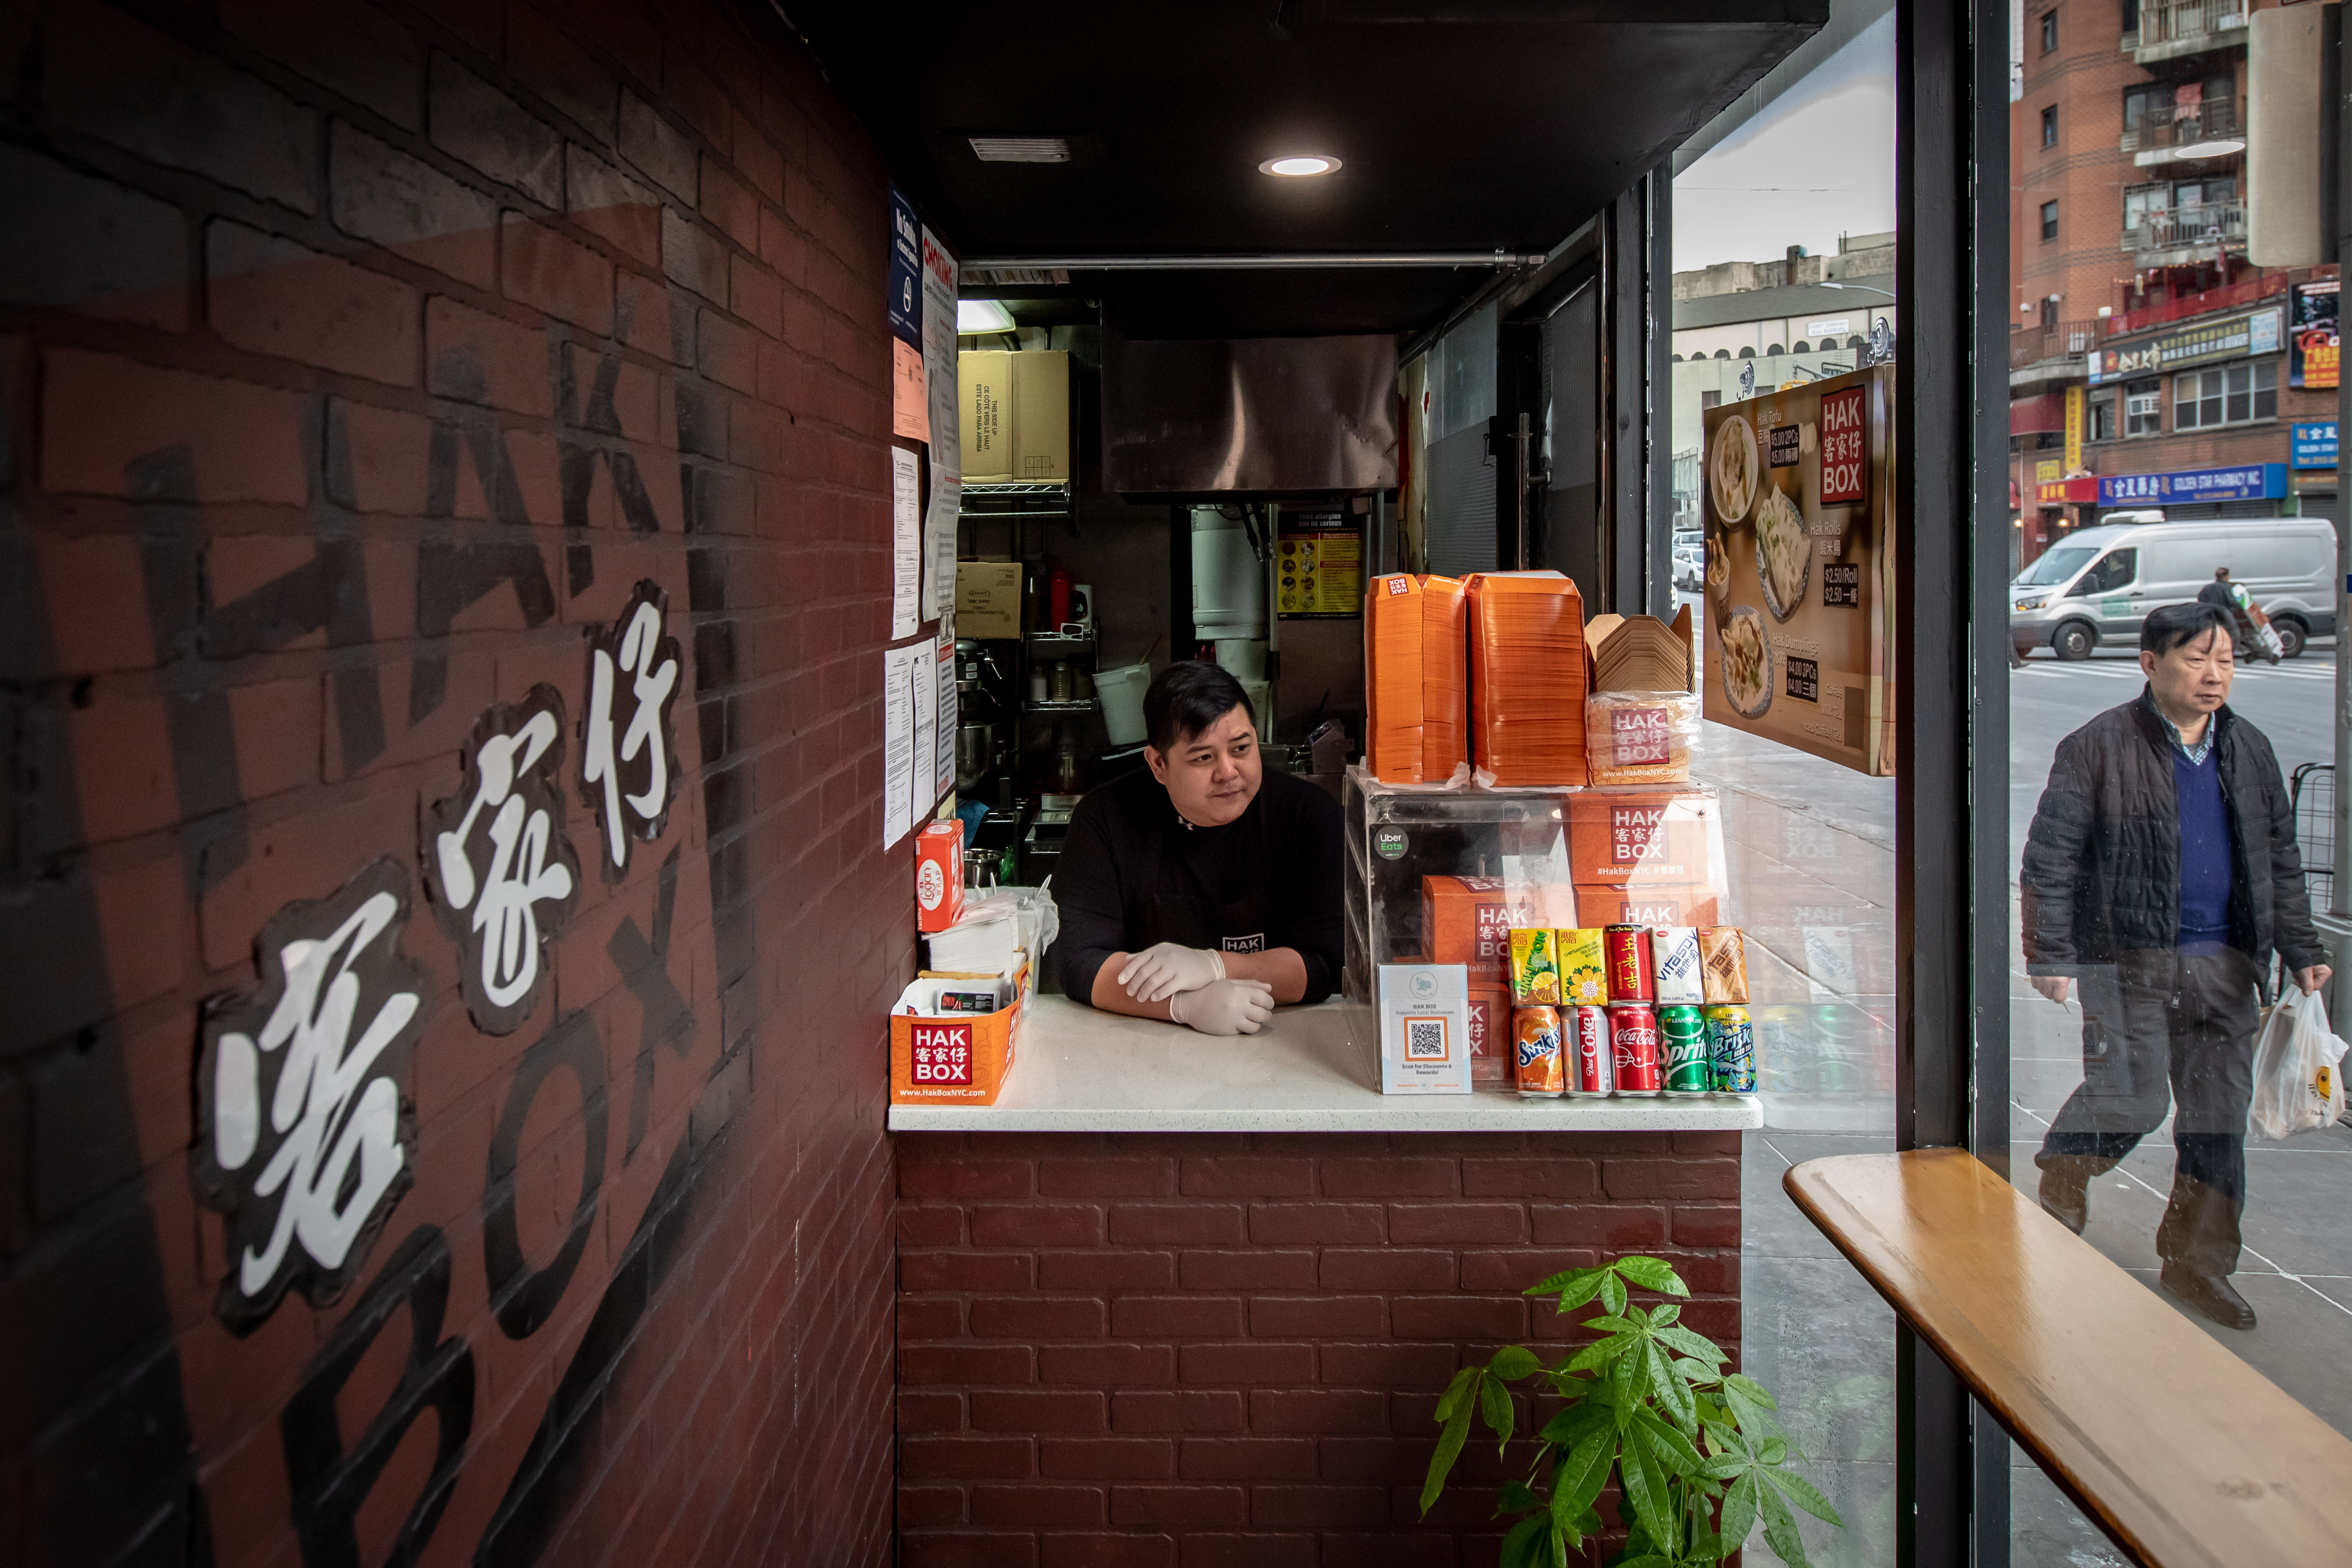 Newcomer Hak Box Surprises Chinatown with a Nostalgic Taste of Old New York